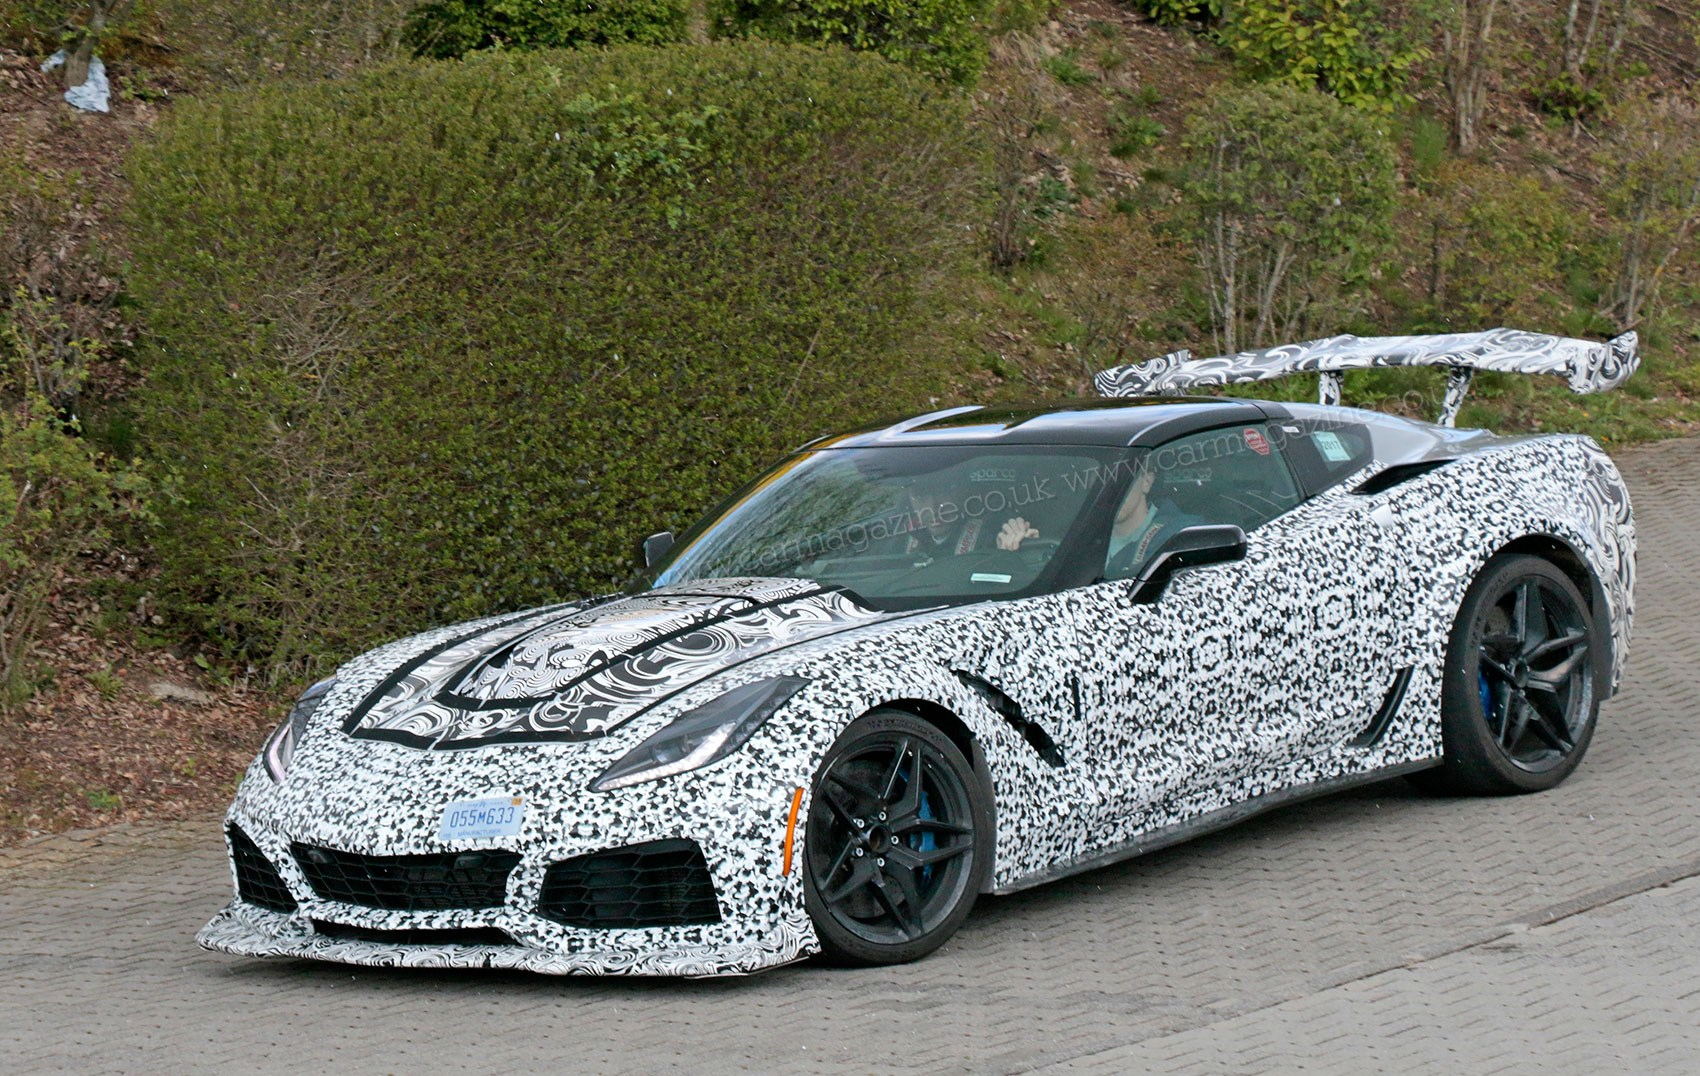 New Corvette Zr1 Steps Out With World S Most Insane Rear